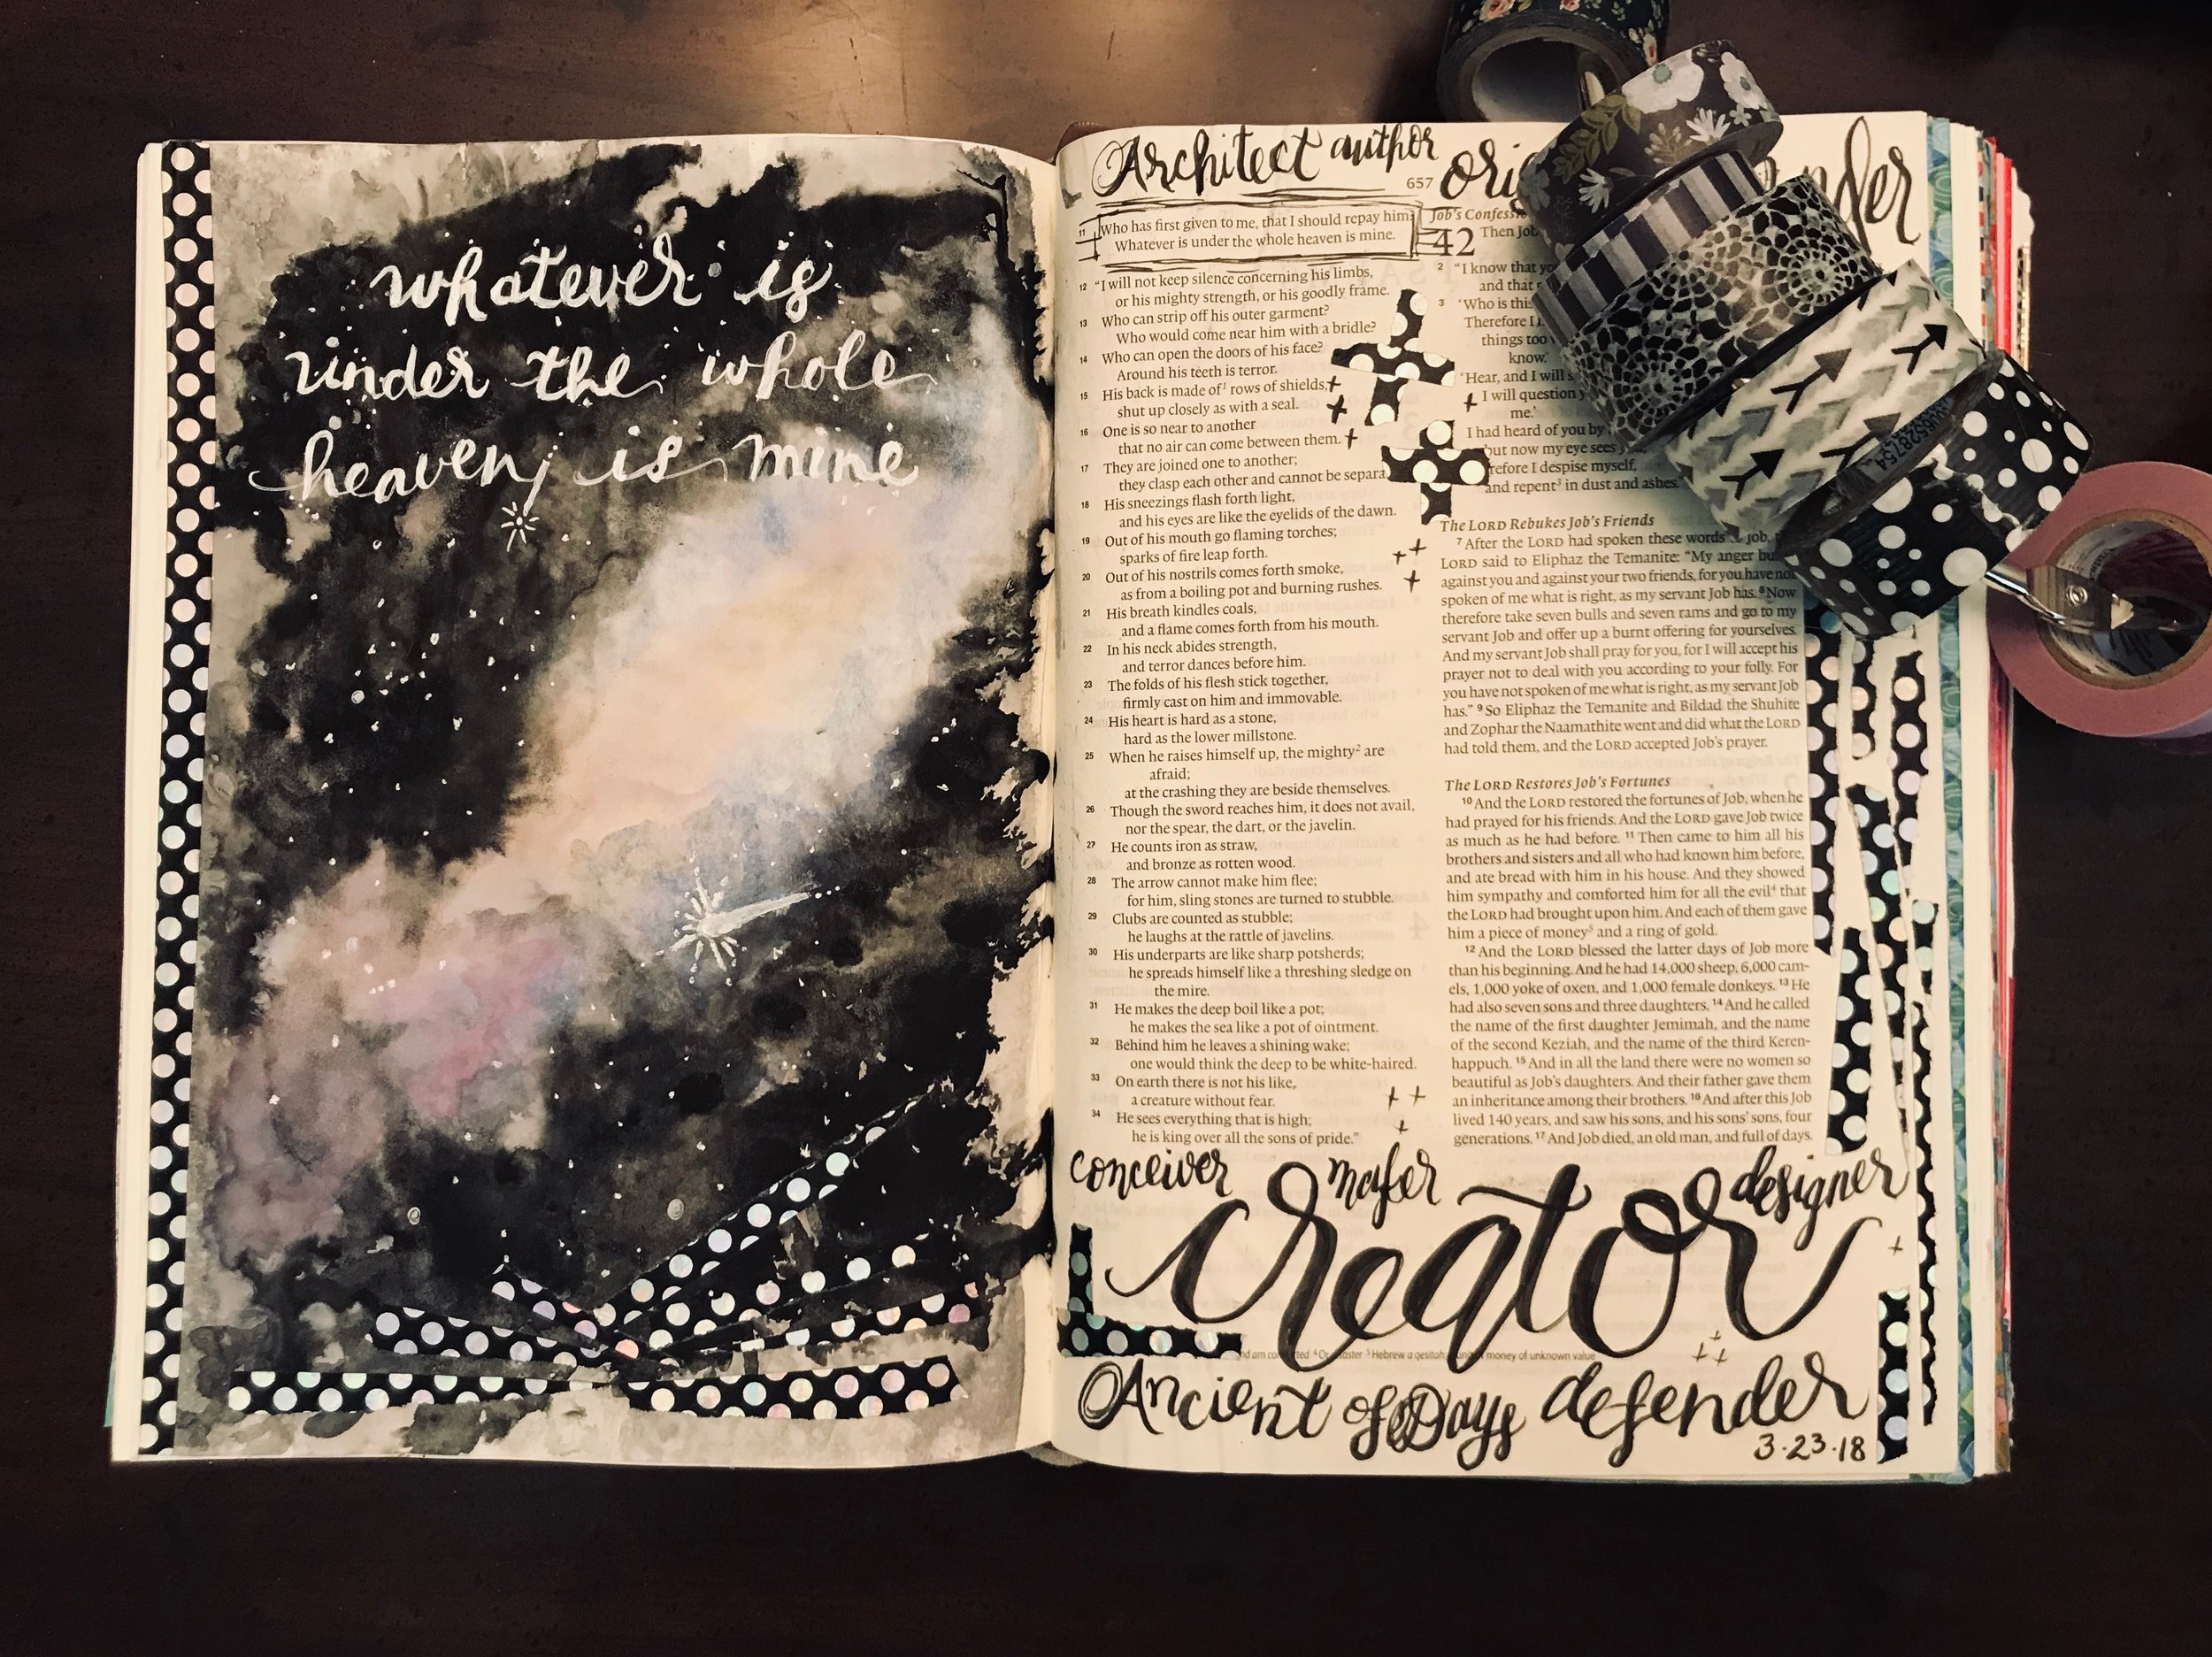 For the winter segment, I created a galaxy view. This piece inspired me to think beyond my circumstances to the big picture; God of the Universe is holding all things in His hands.